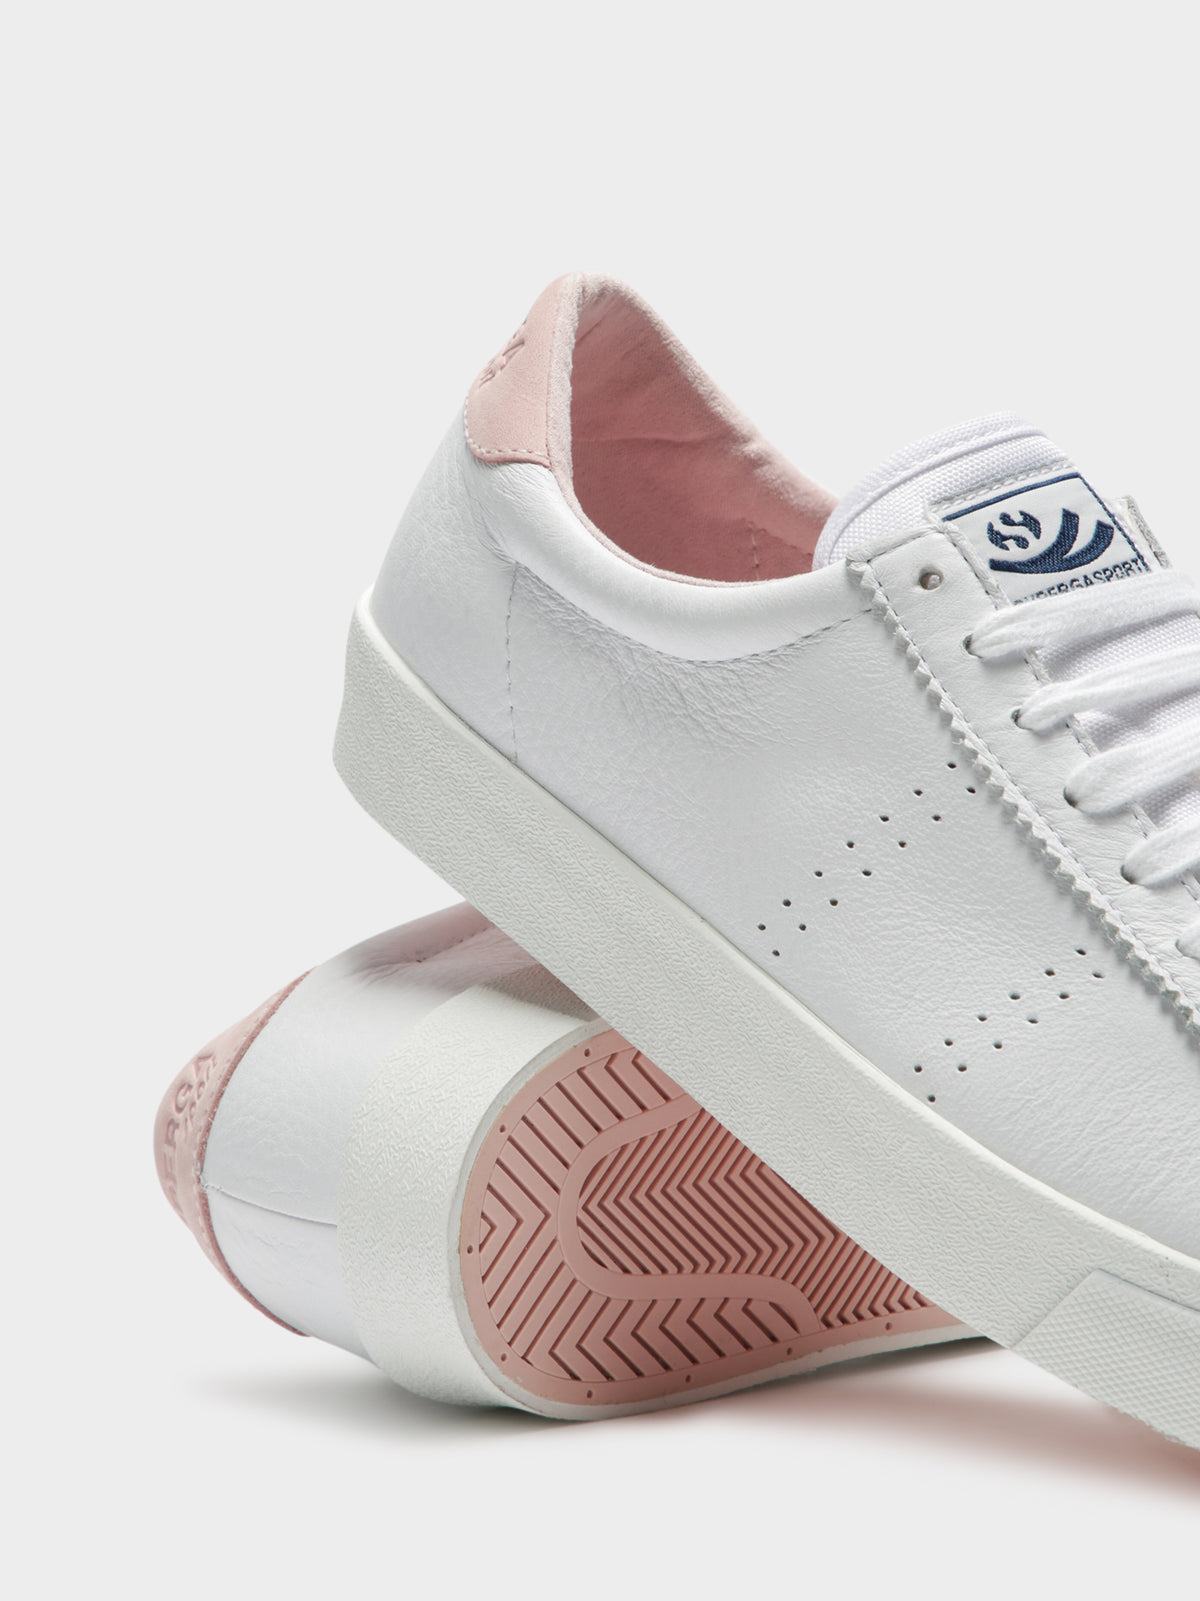 Womens 2843 Clubs Comfleau Sneakers in White & Pink